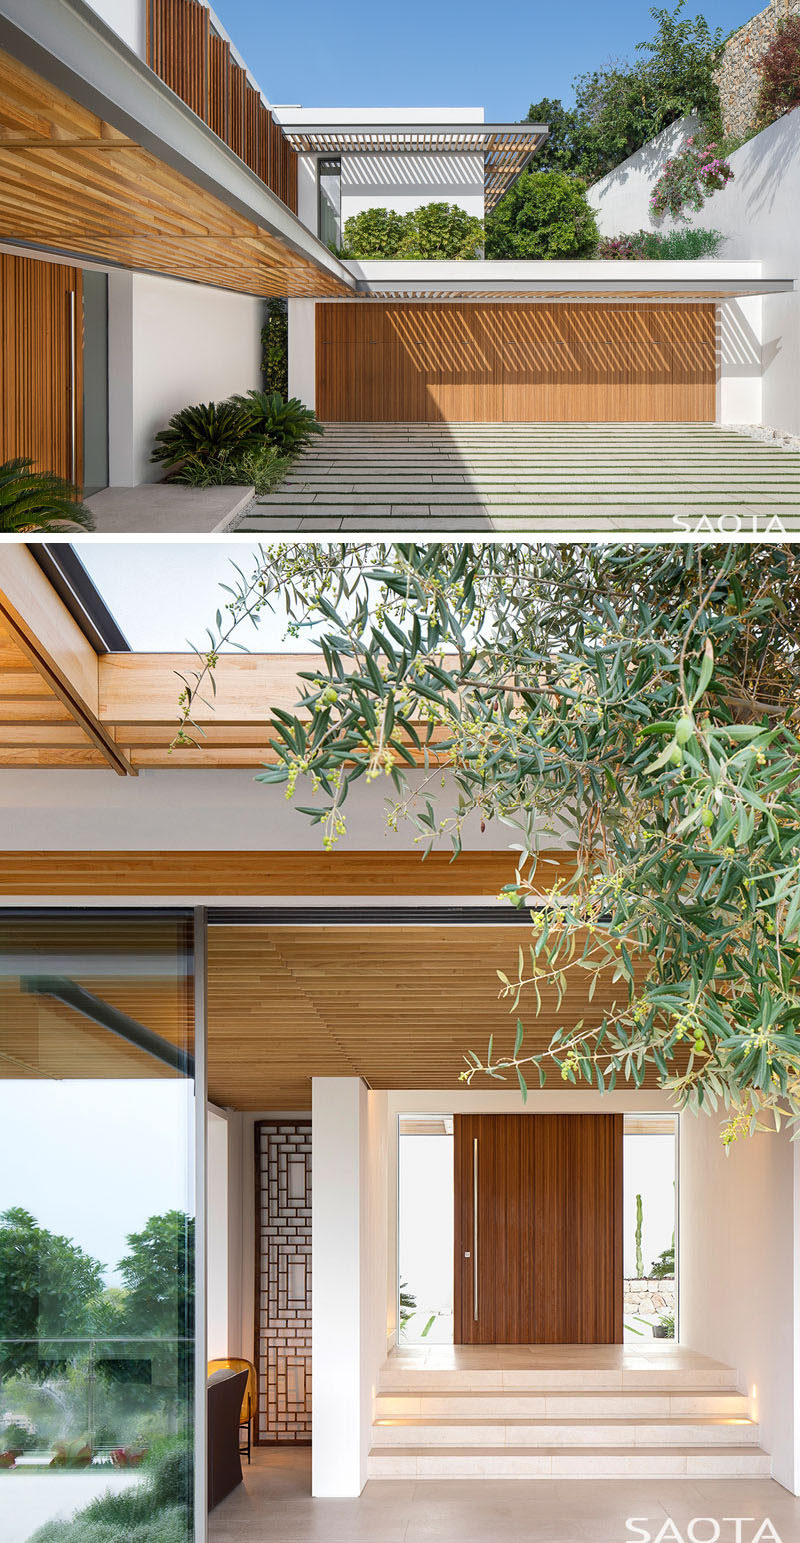 This house in Mallorca, Spain, combines white walls, wood elements and plants for a modern appearance. #ModernHouse #WoodElements #Architecture